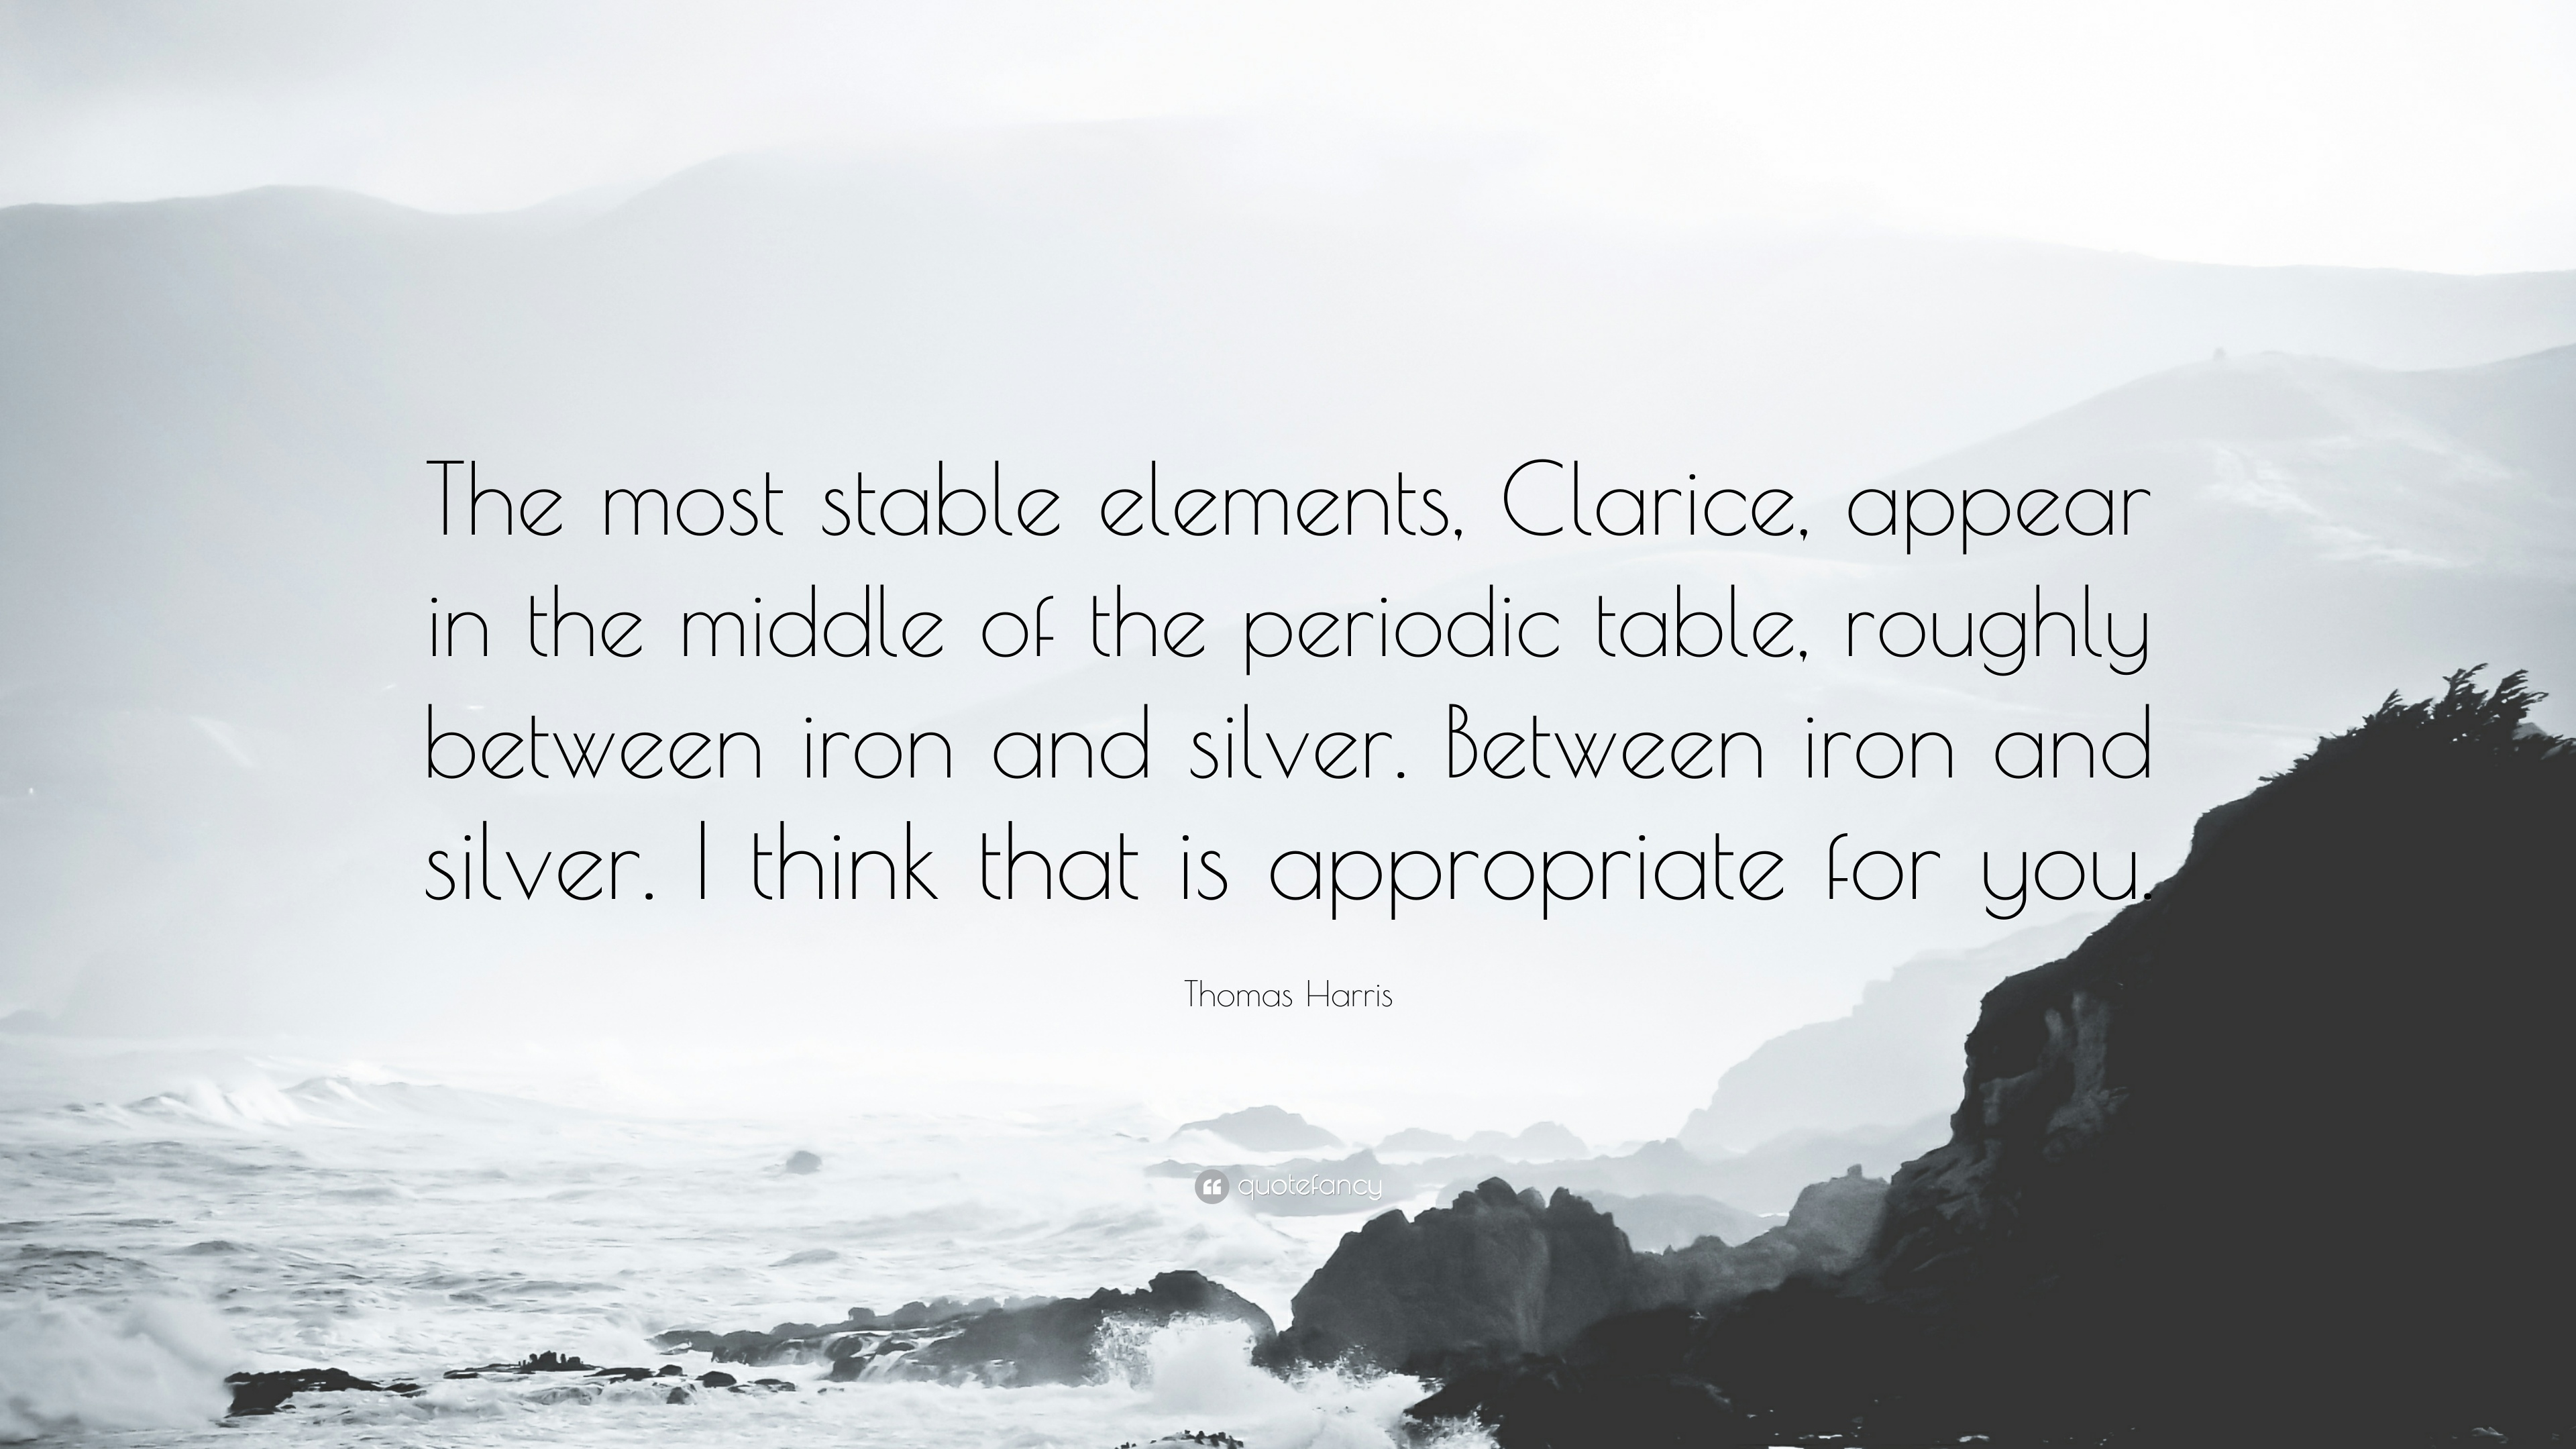 Thomas harris quote the most stable elements clarice appear in thomas harris quote the most stable elements clarice appear in the middle gamestrikefo Choice Image